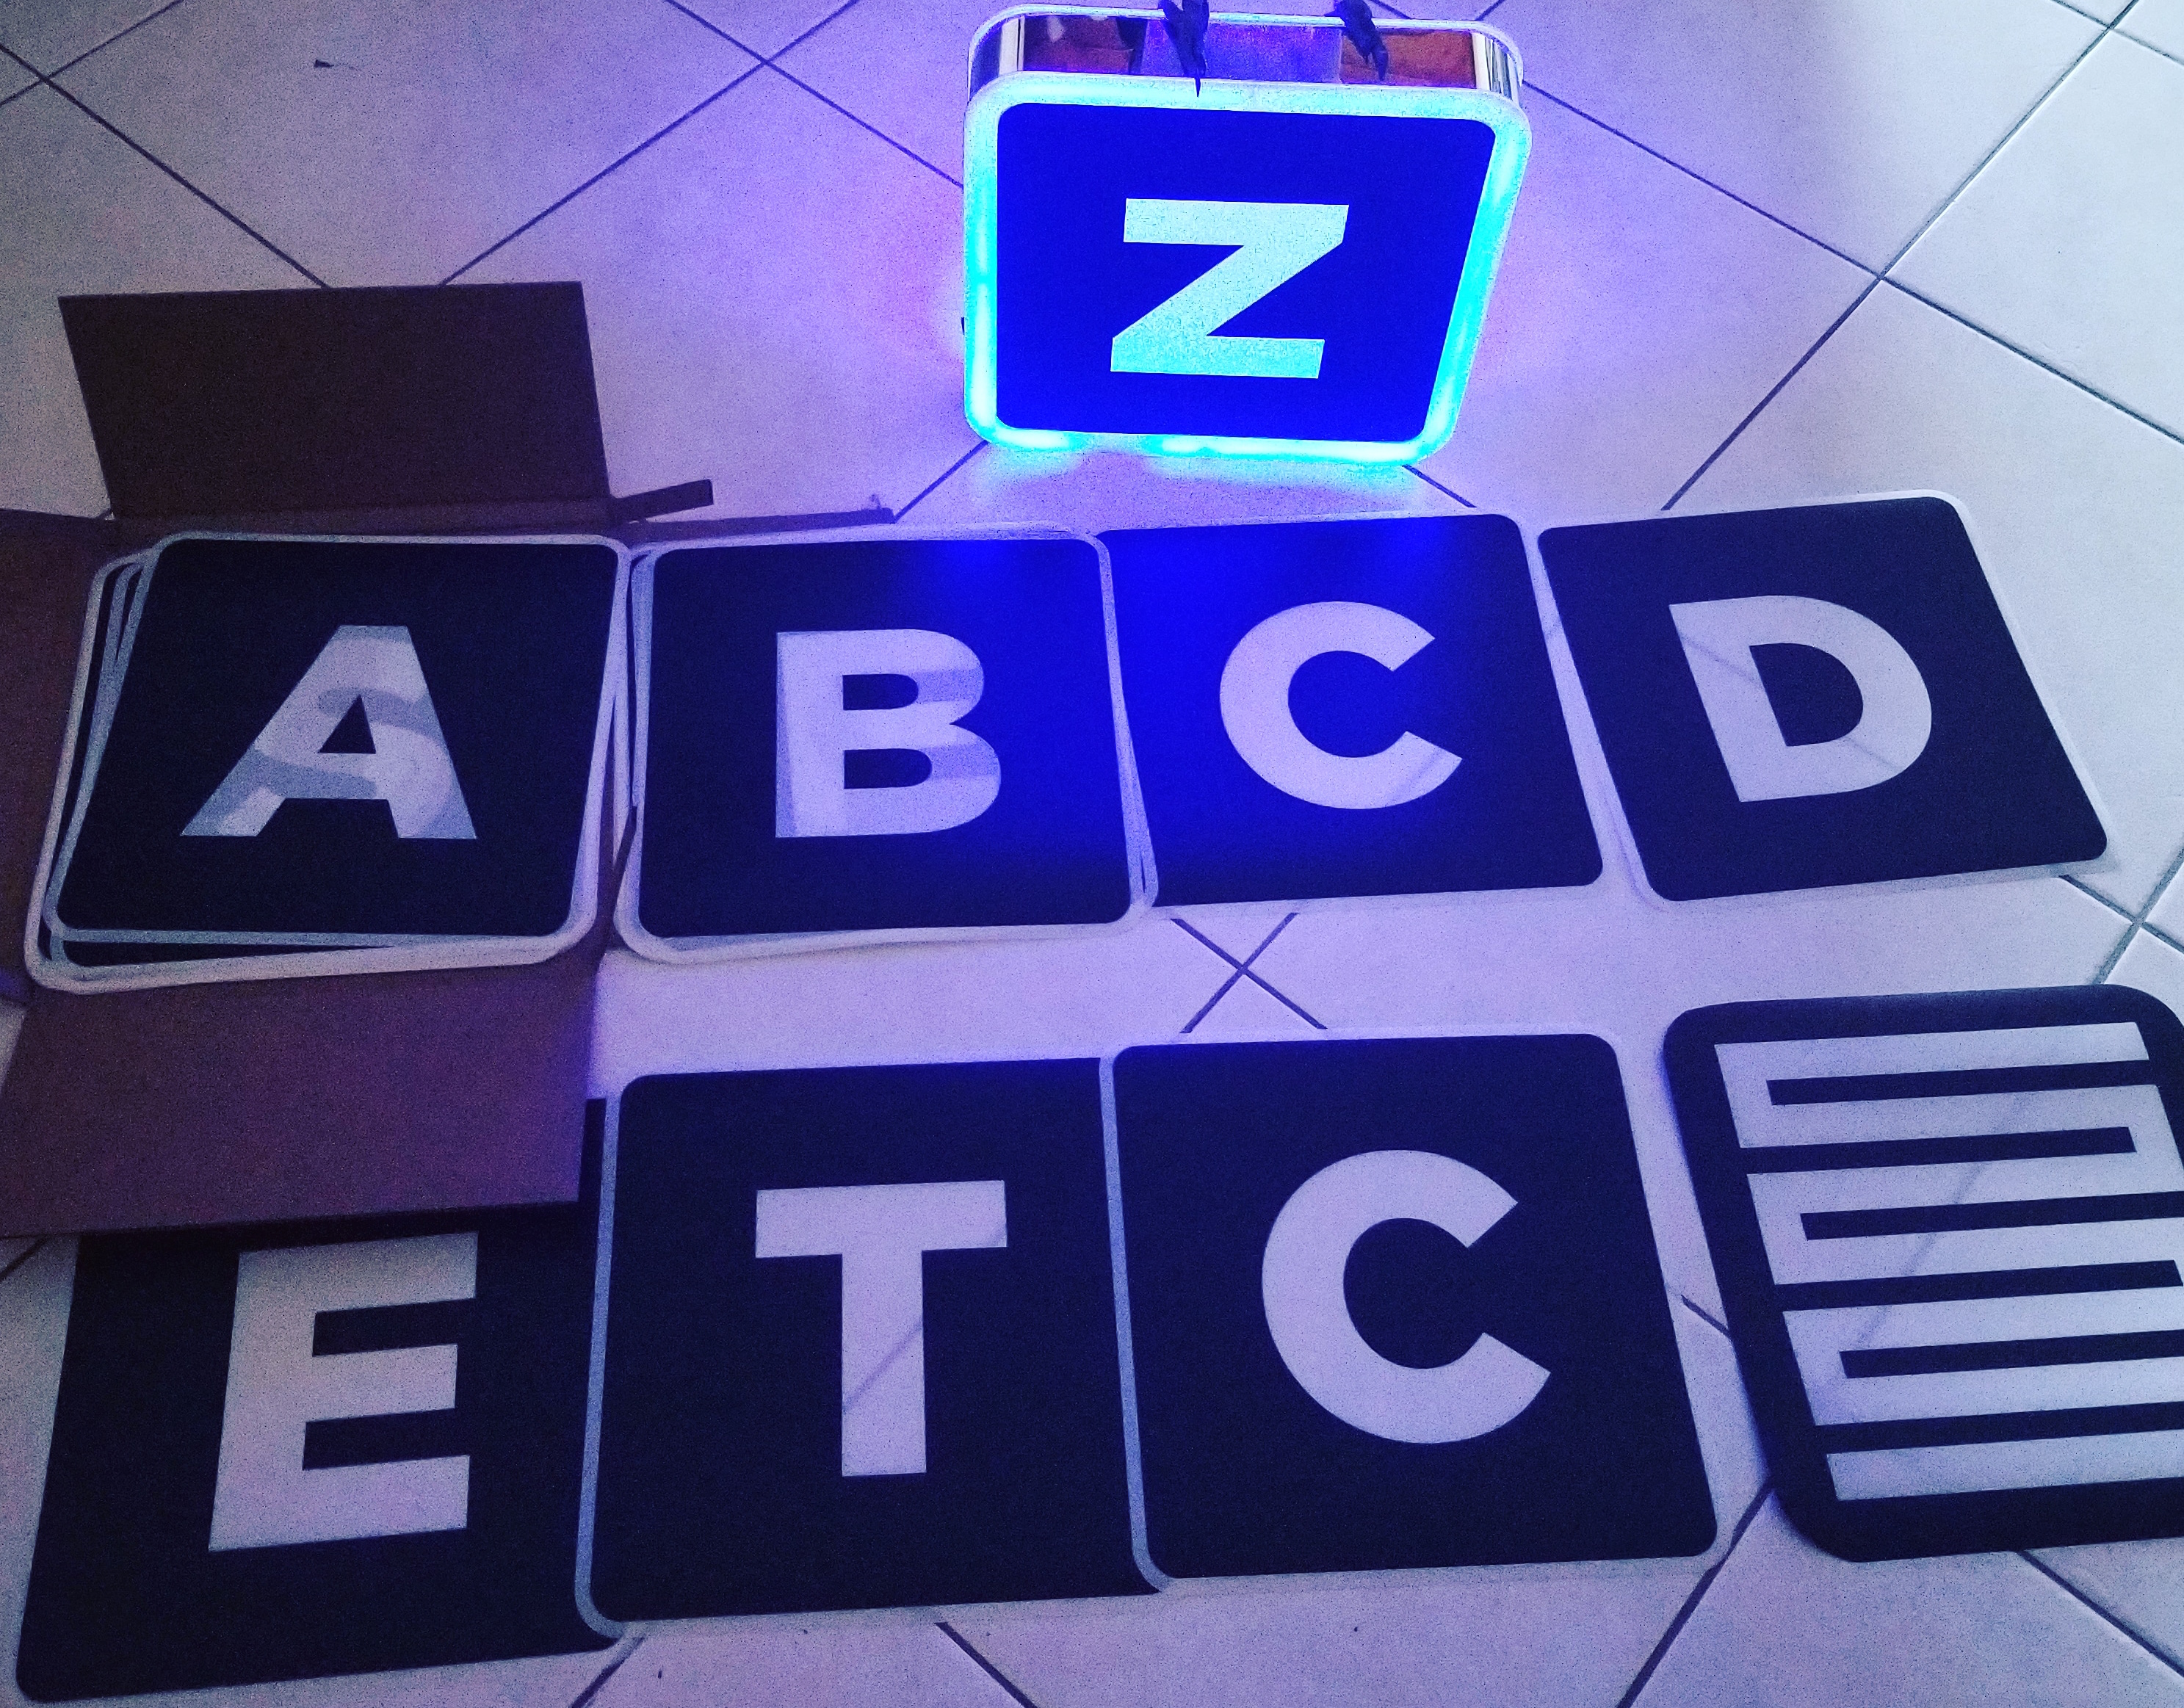 led-letter-box-presenter-shield-vip-birthday-lightbox-ledletters-nightclubshop.jpg